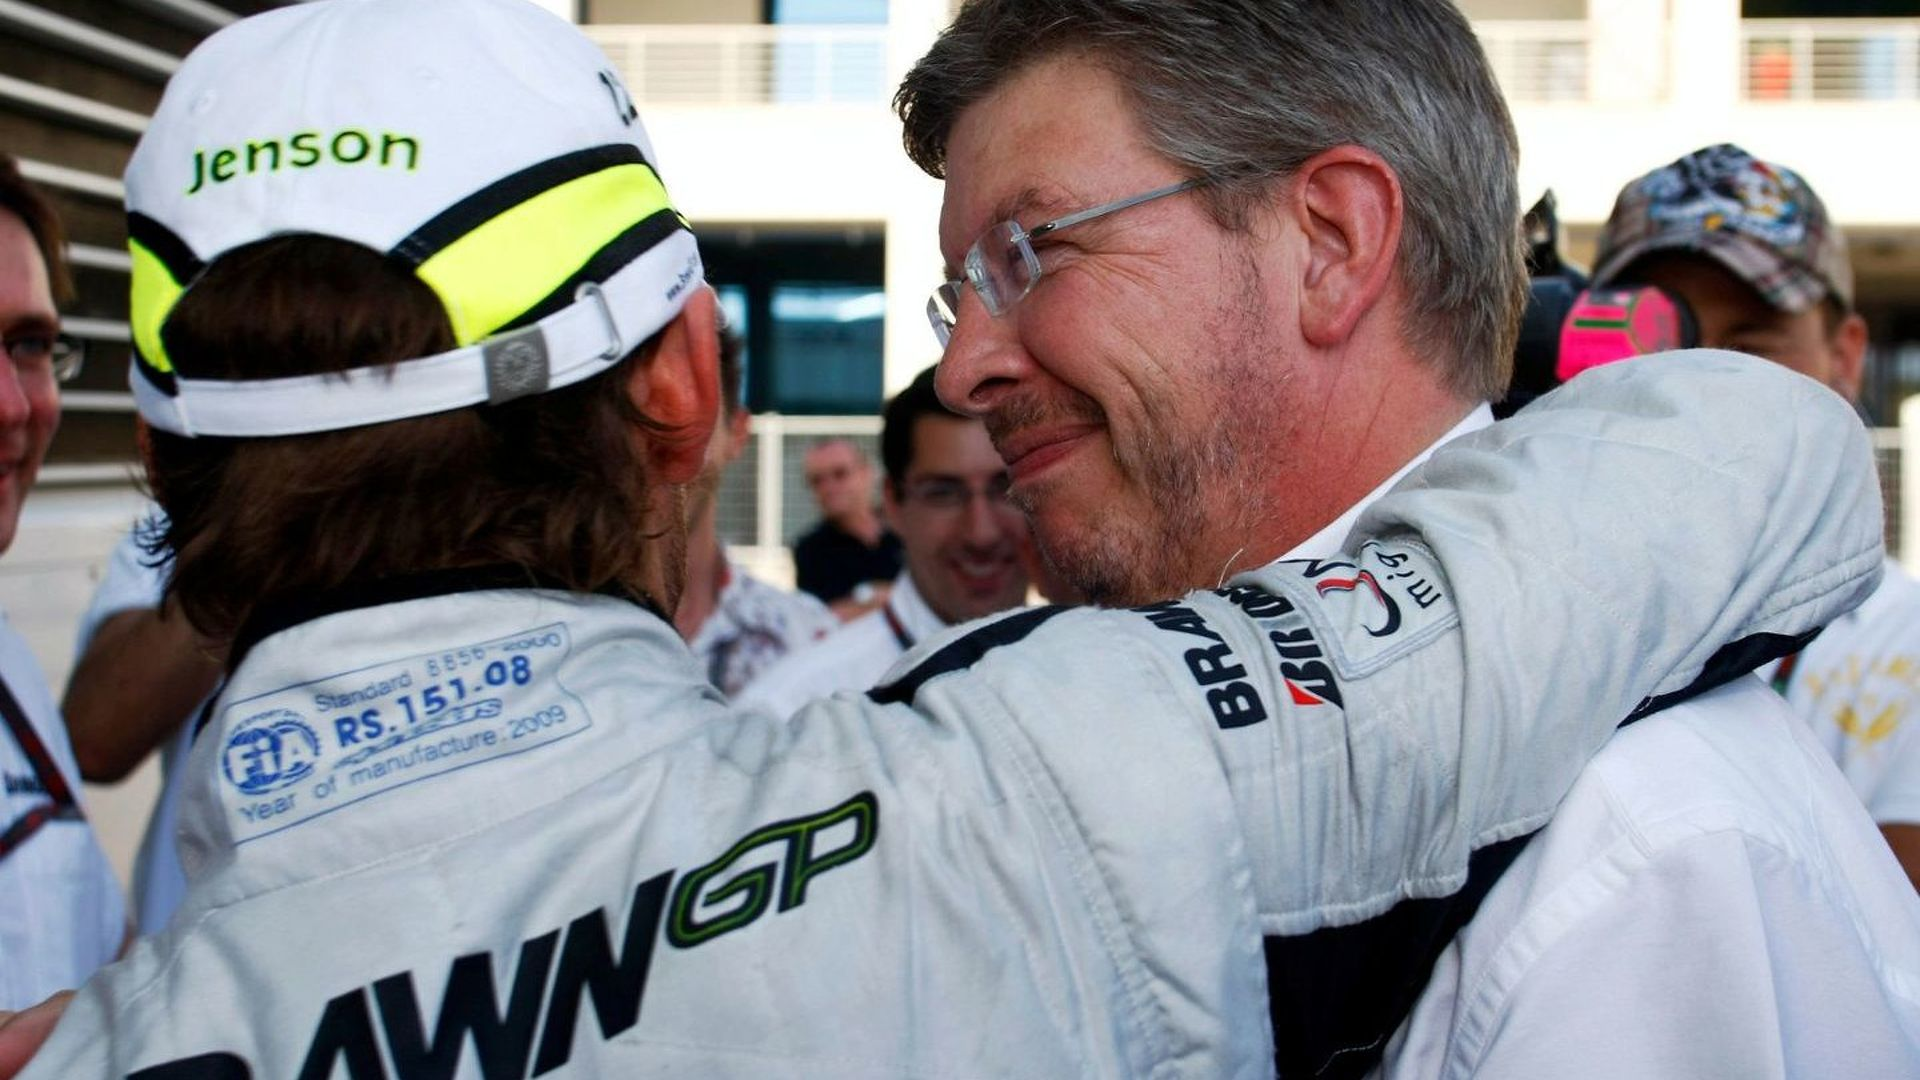 Brawn has title sponsor for 2010 - boss